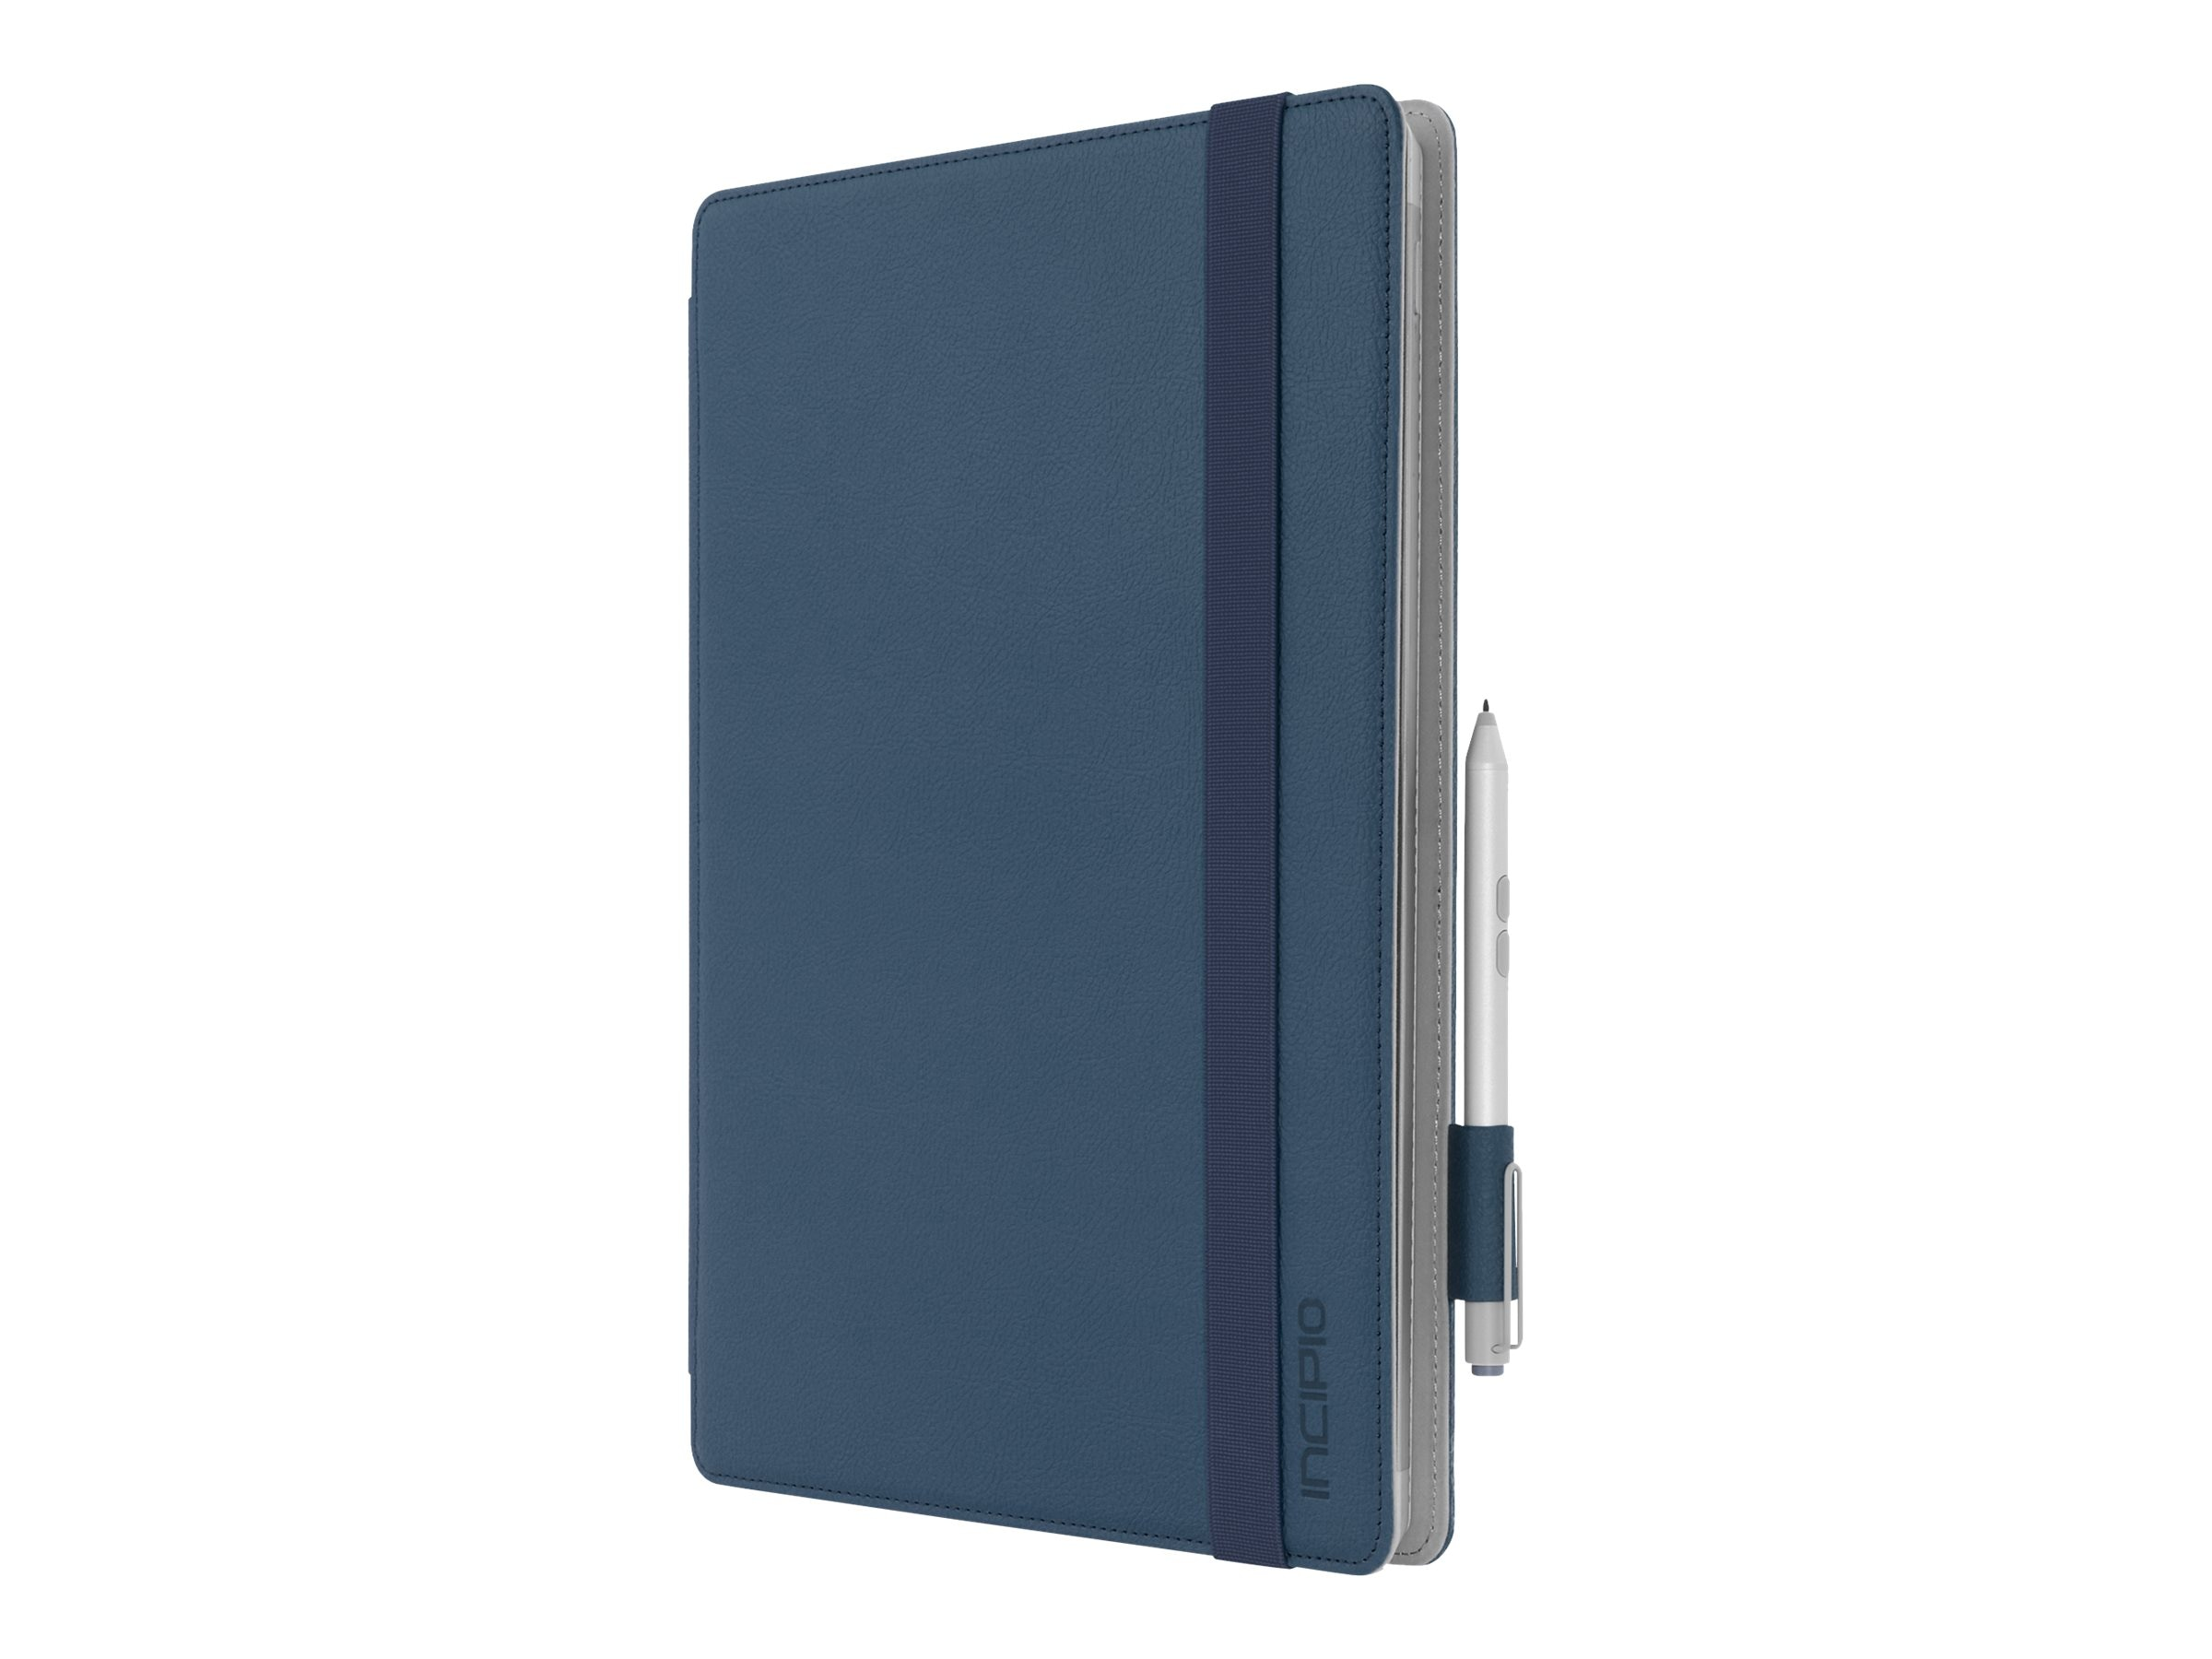 Incipio Roosevelt Slim Folio w  Snap-On Type Cover Compatibility for Microsoft Surface Pro 3 & 4, Blue, MRSF-070-BLU